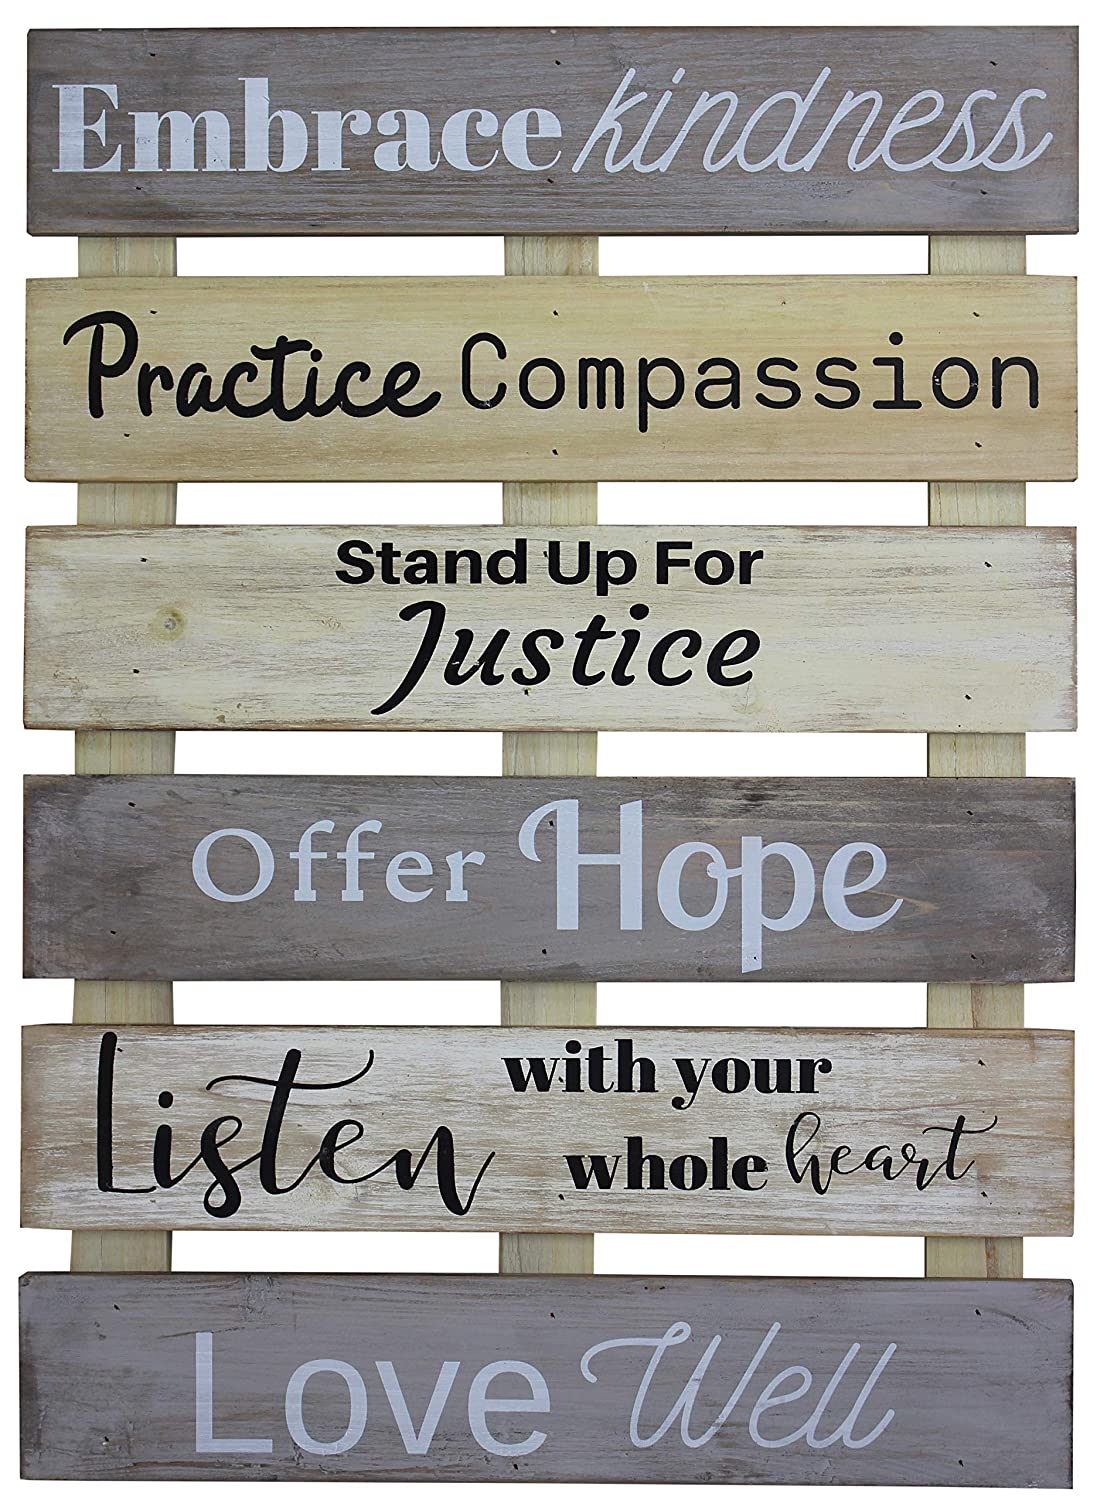 Vintage Rustic Farmhouse Wall Home Decor Inspirational Motivational Sign for Kitchen, Living Room, Dining Room, Bedroom or Bathroom – Embrace Kindness Love Well Barnwood Color Decorative Wall Plaque